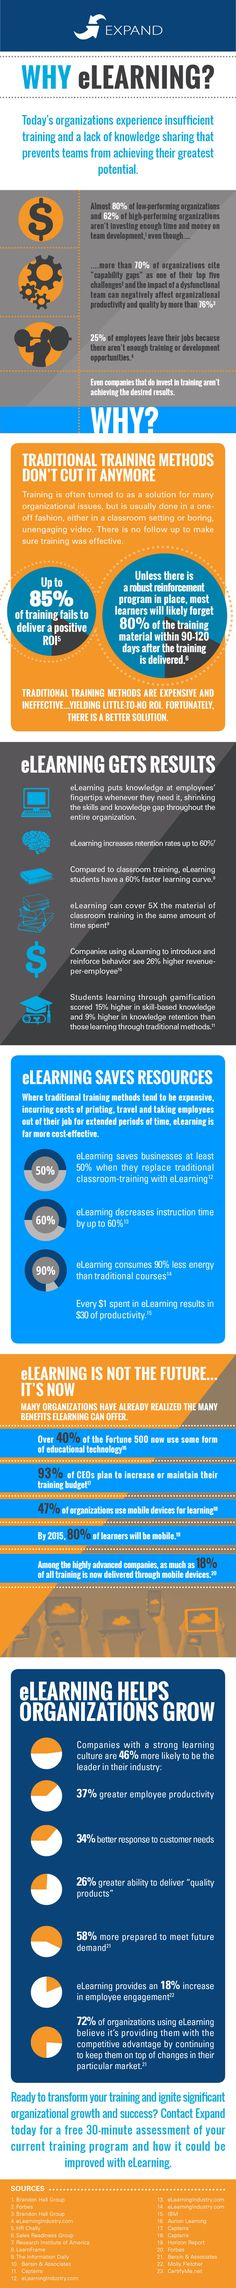 Why #eLearning? #edtech